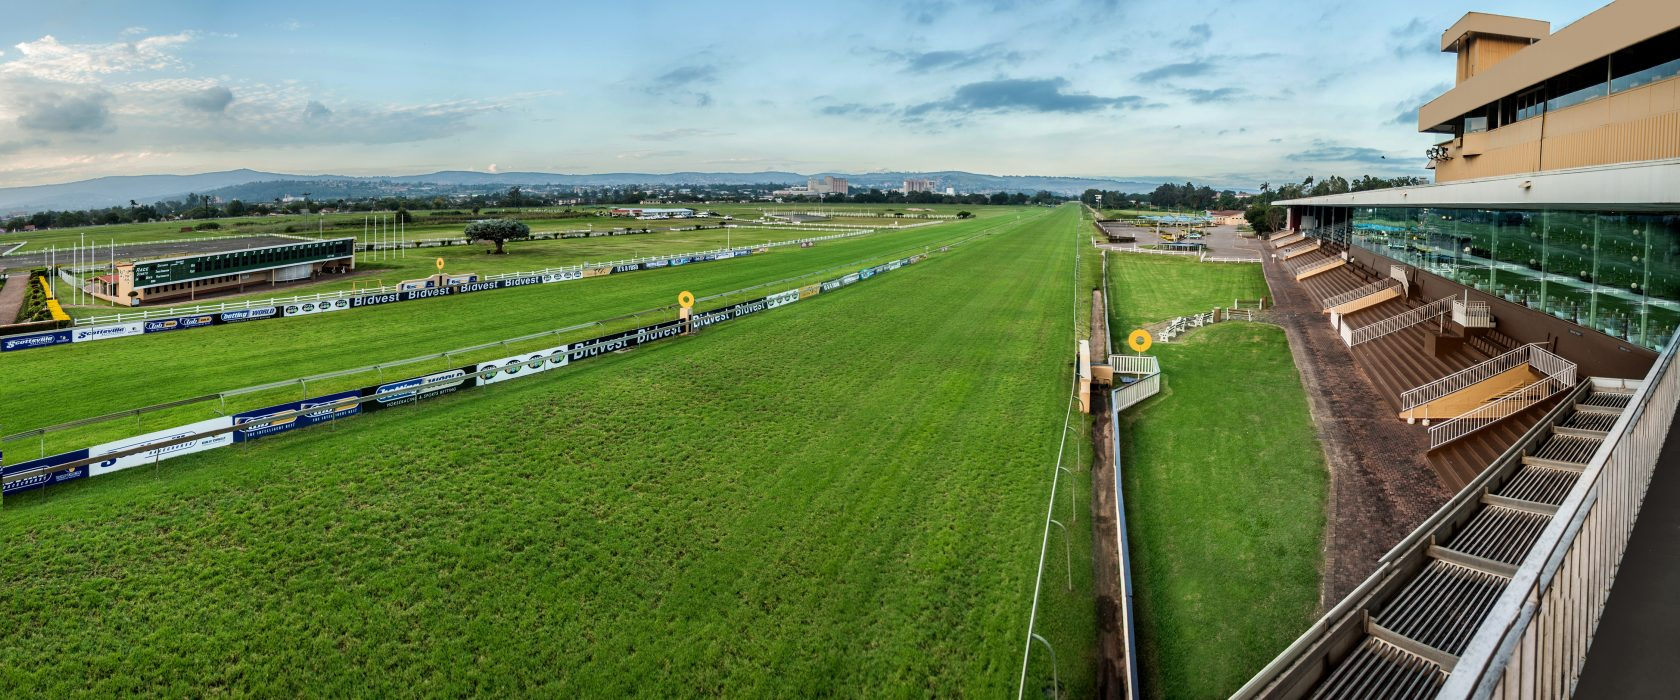 The Scottsville Race Track